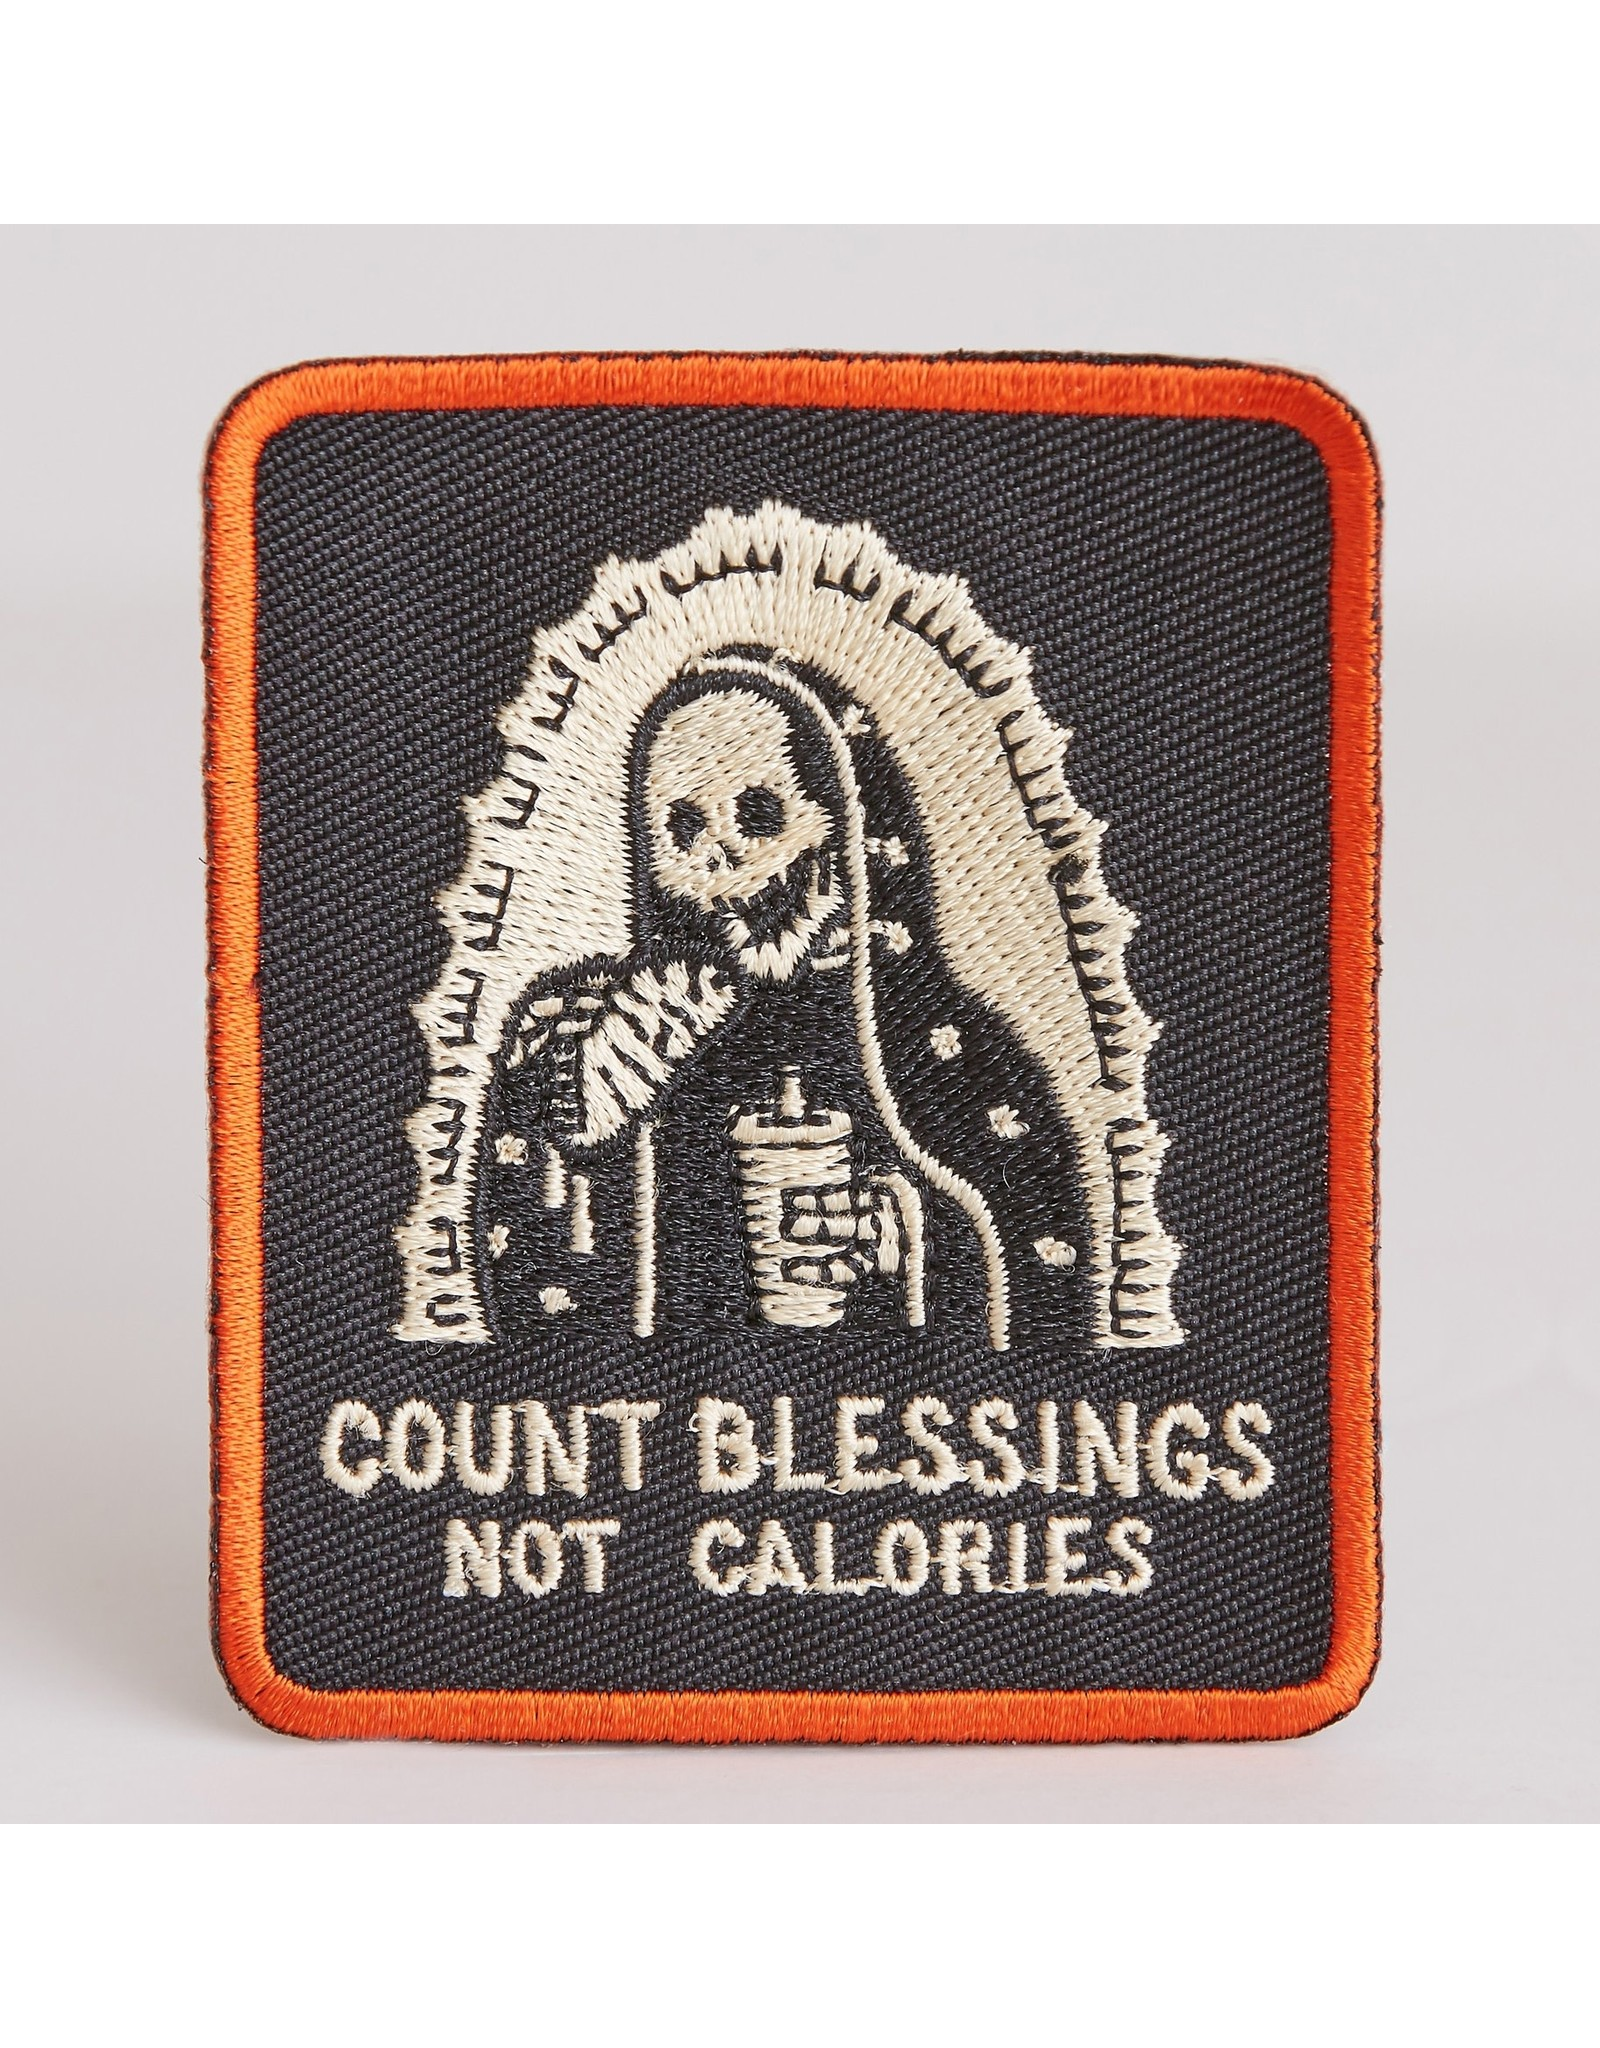 PYKNIC PYKNIC COUNT BLESSINGS NOT CALORIES PATCH